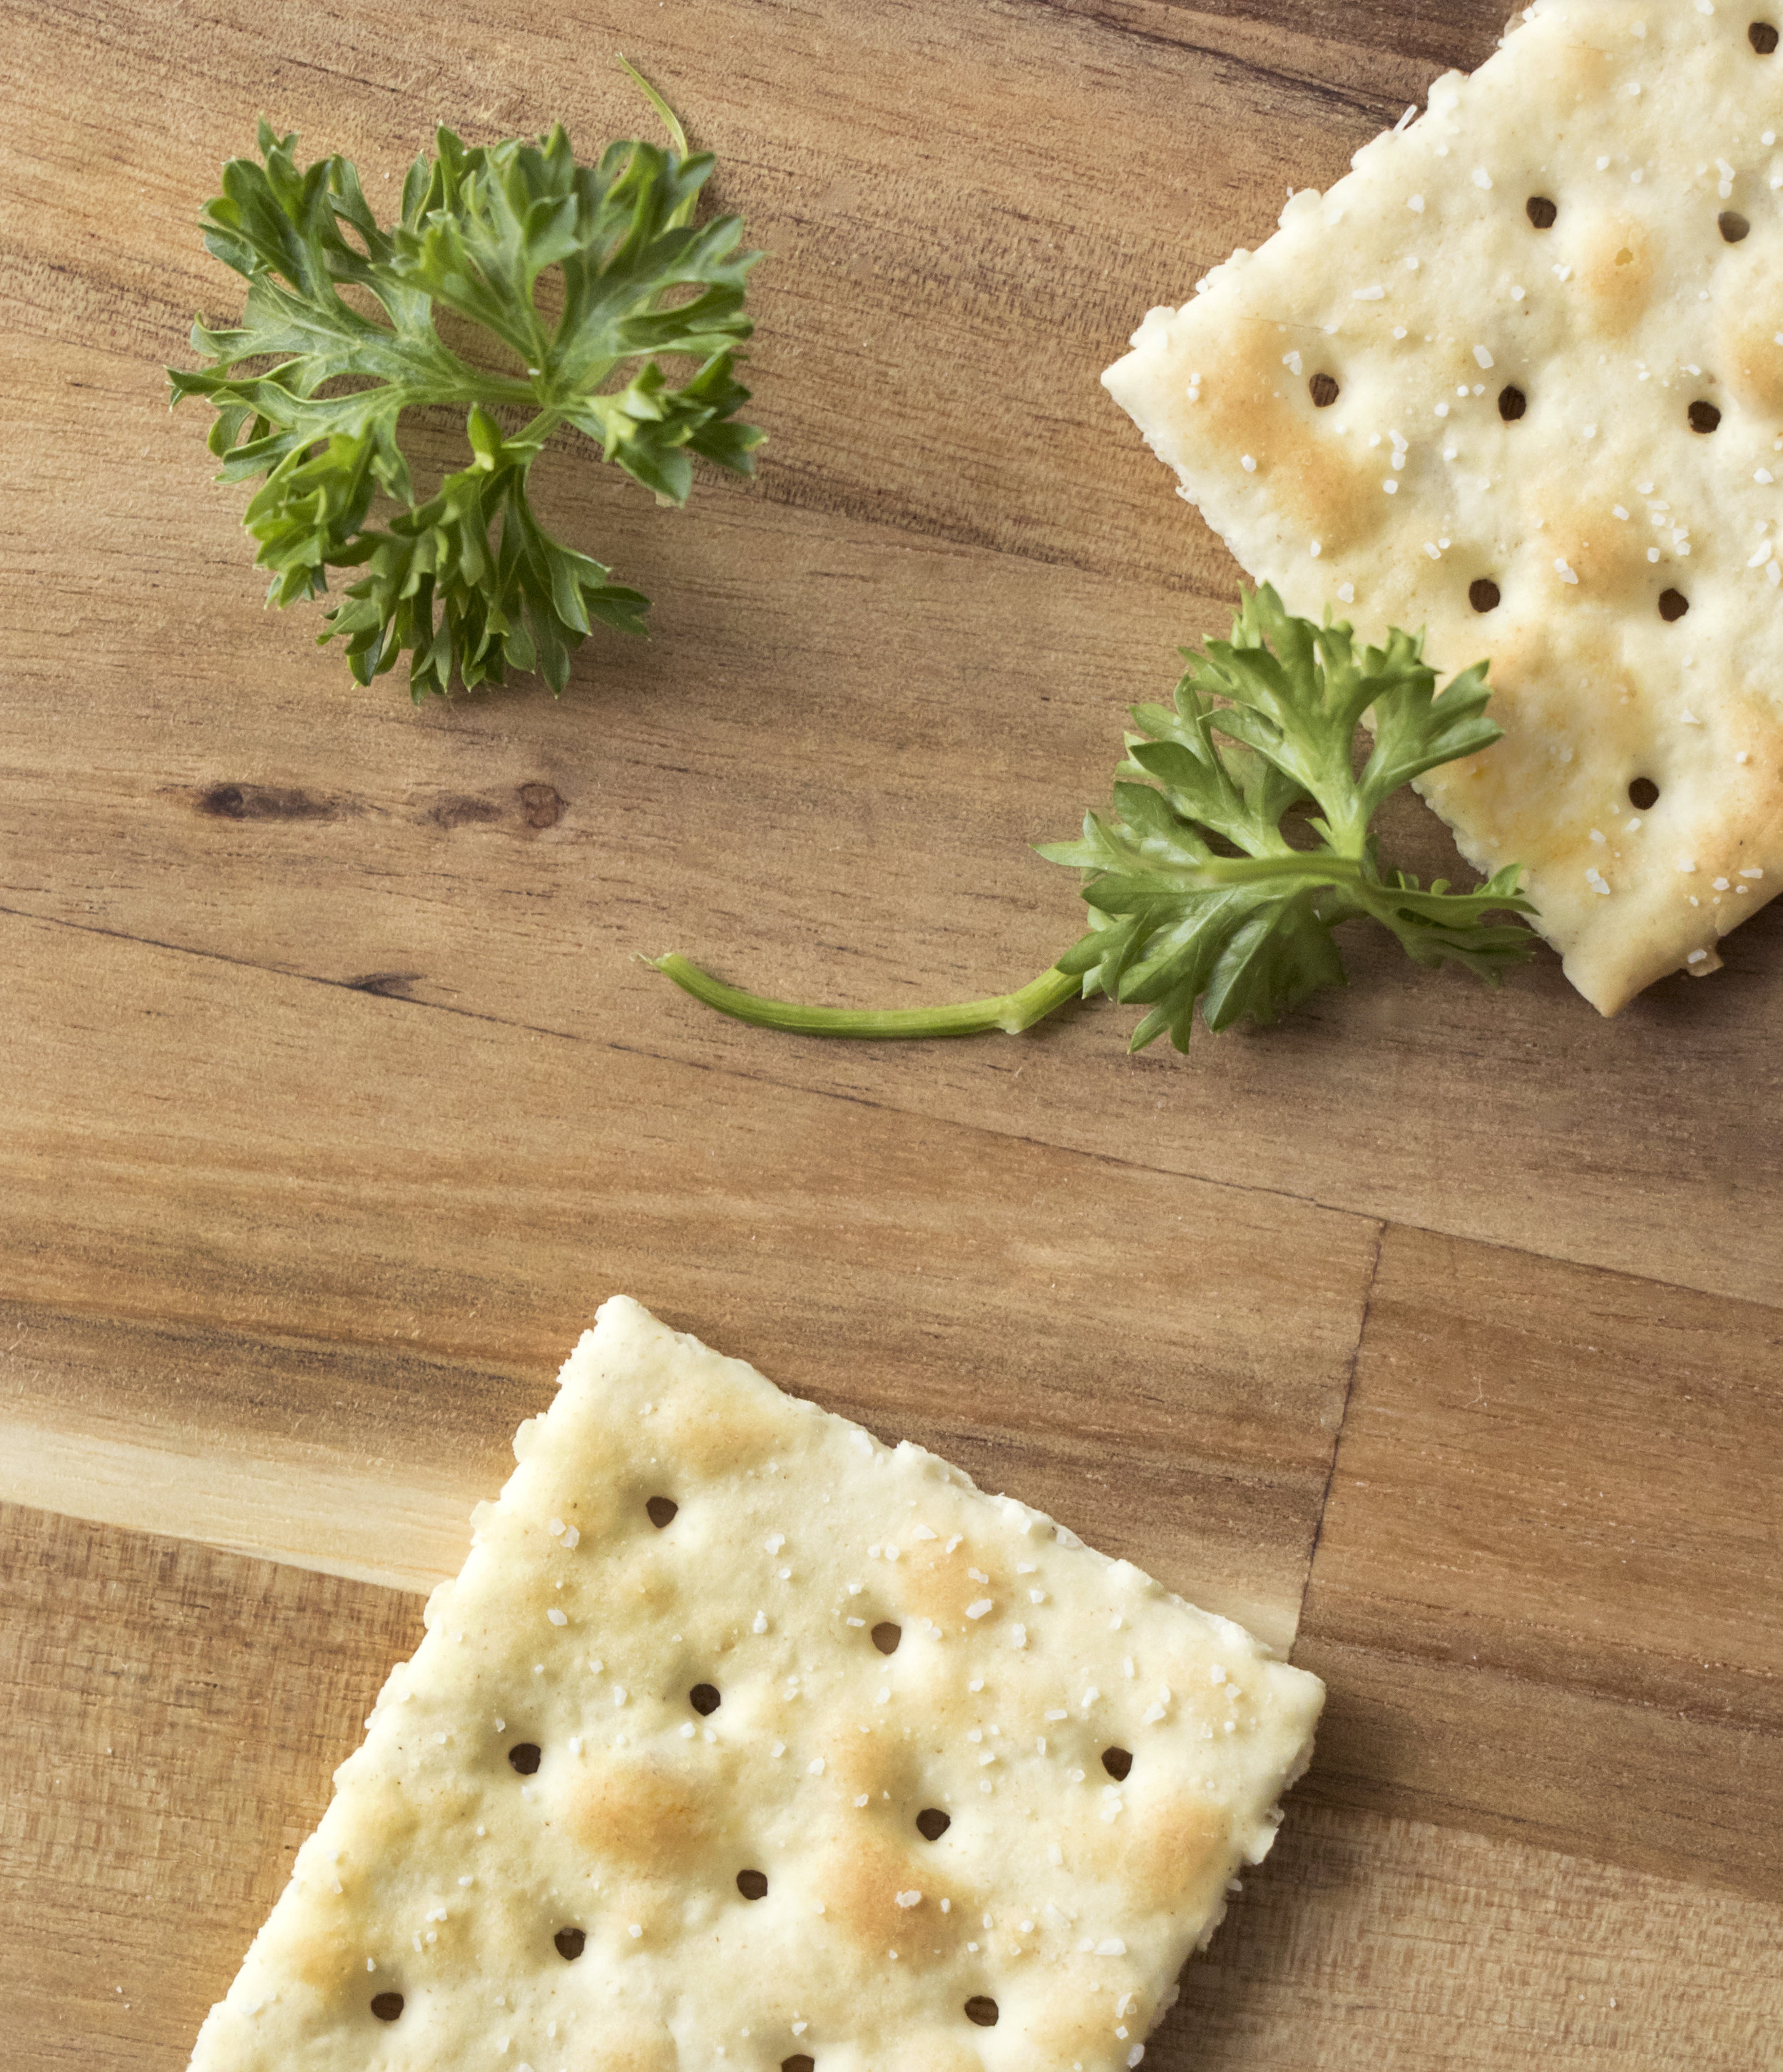 crackers and parsley